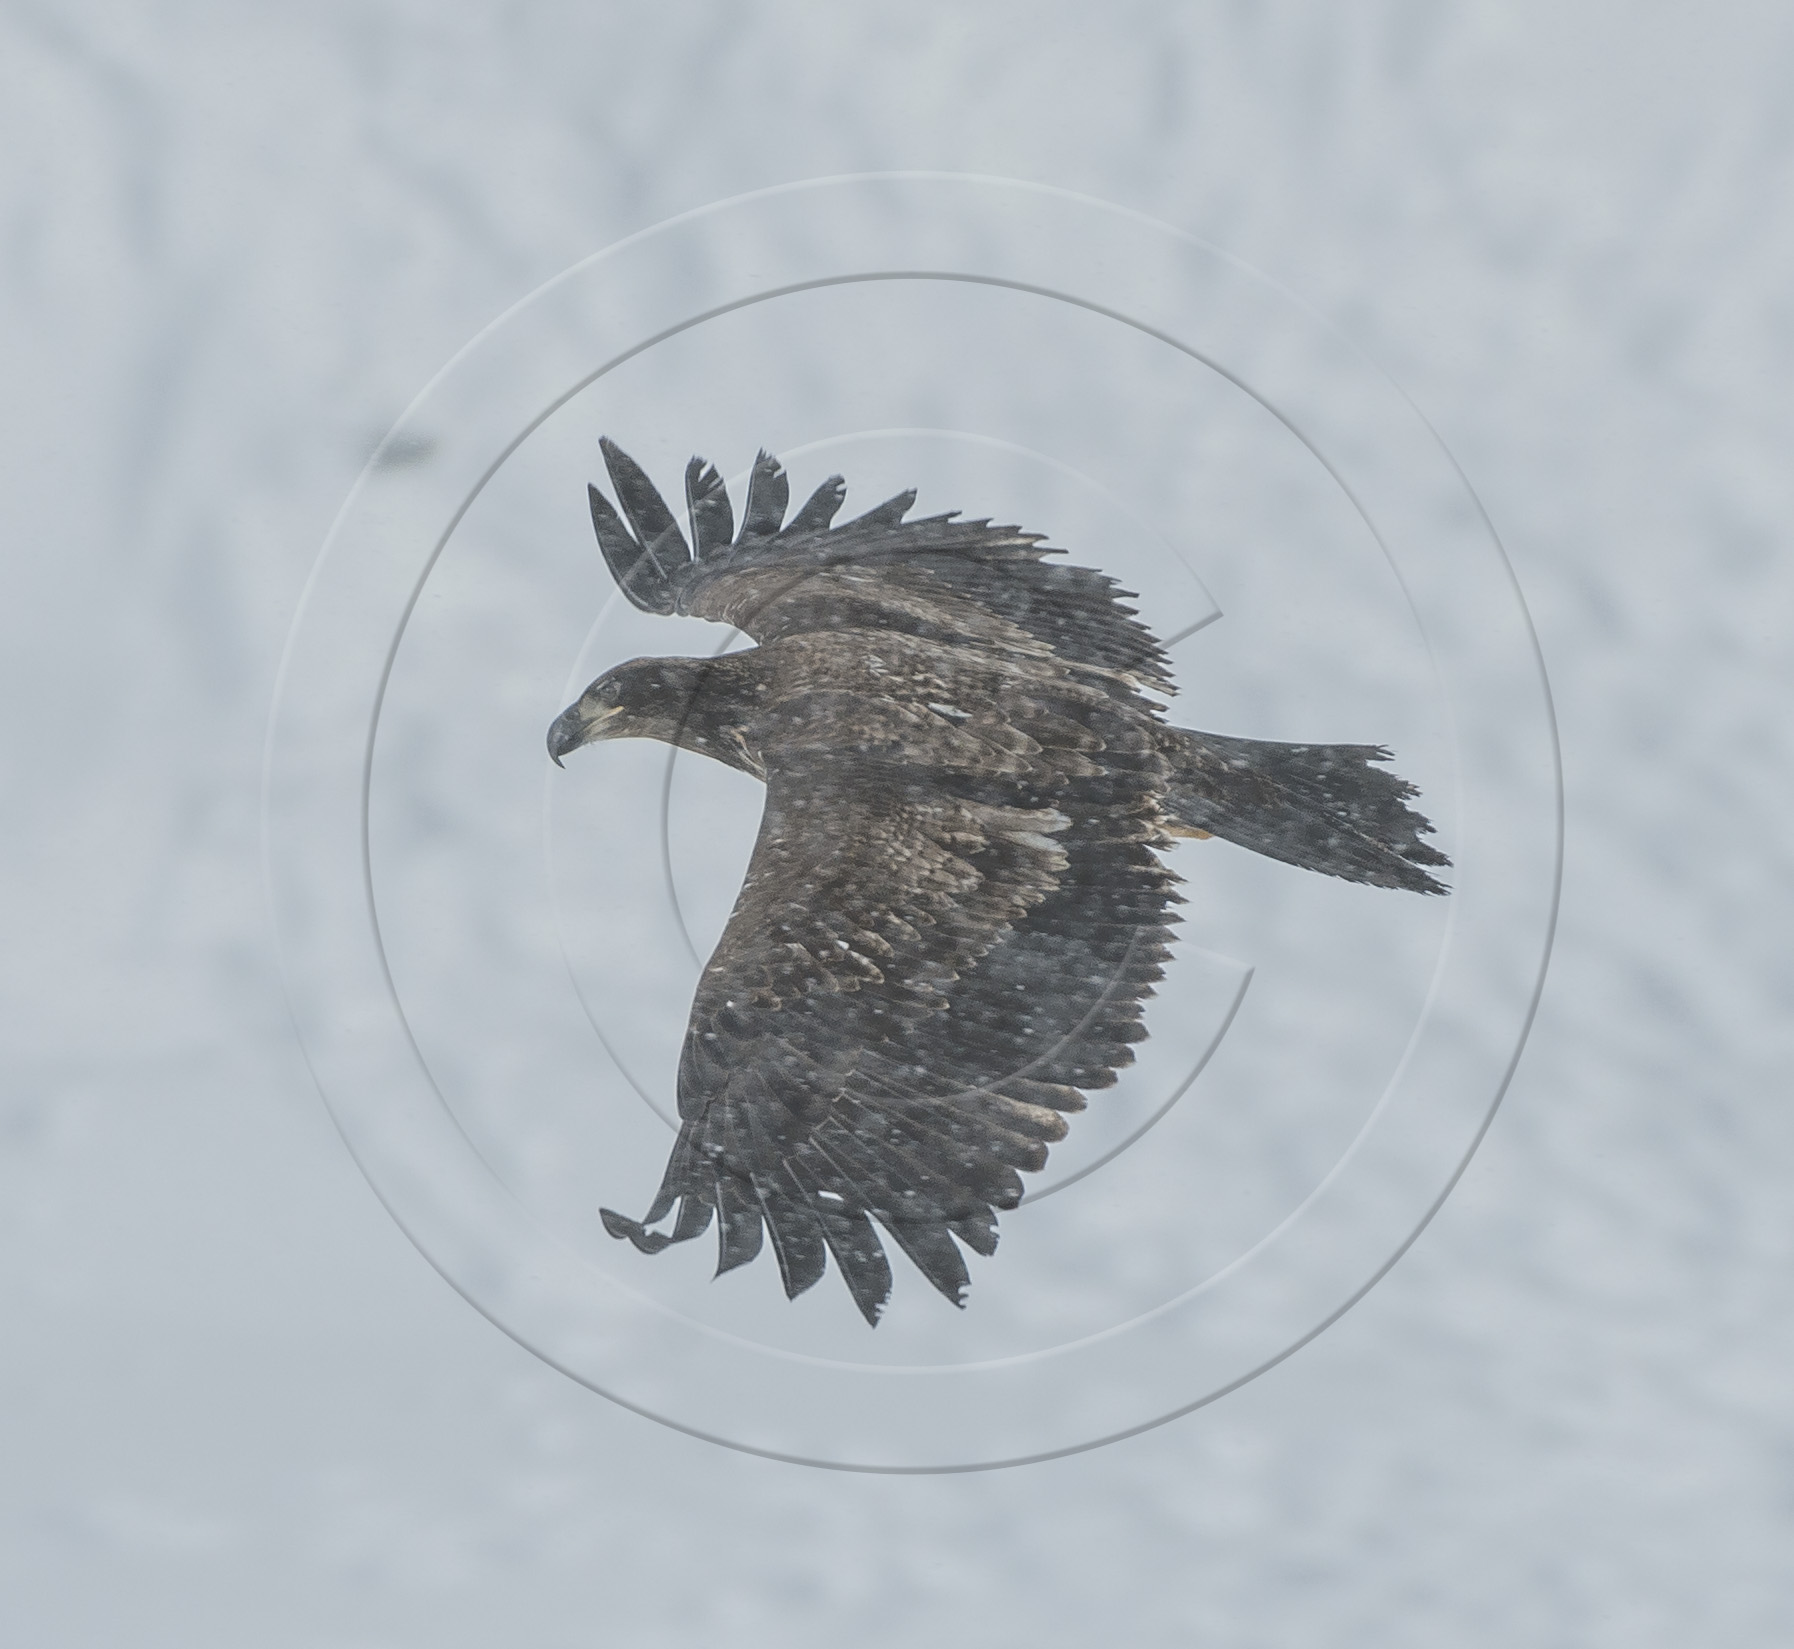 GOLDEN EAGLE FLIGHT WINGSPREAD-1